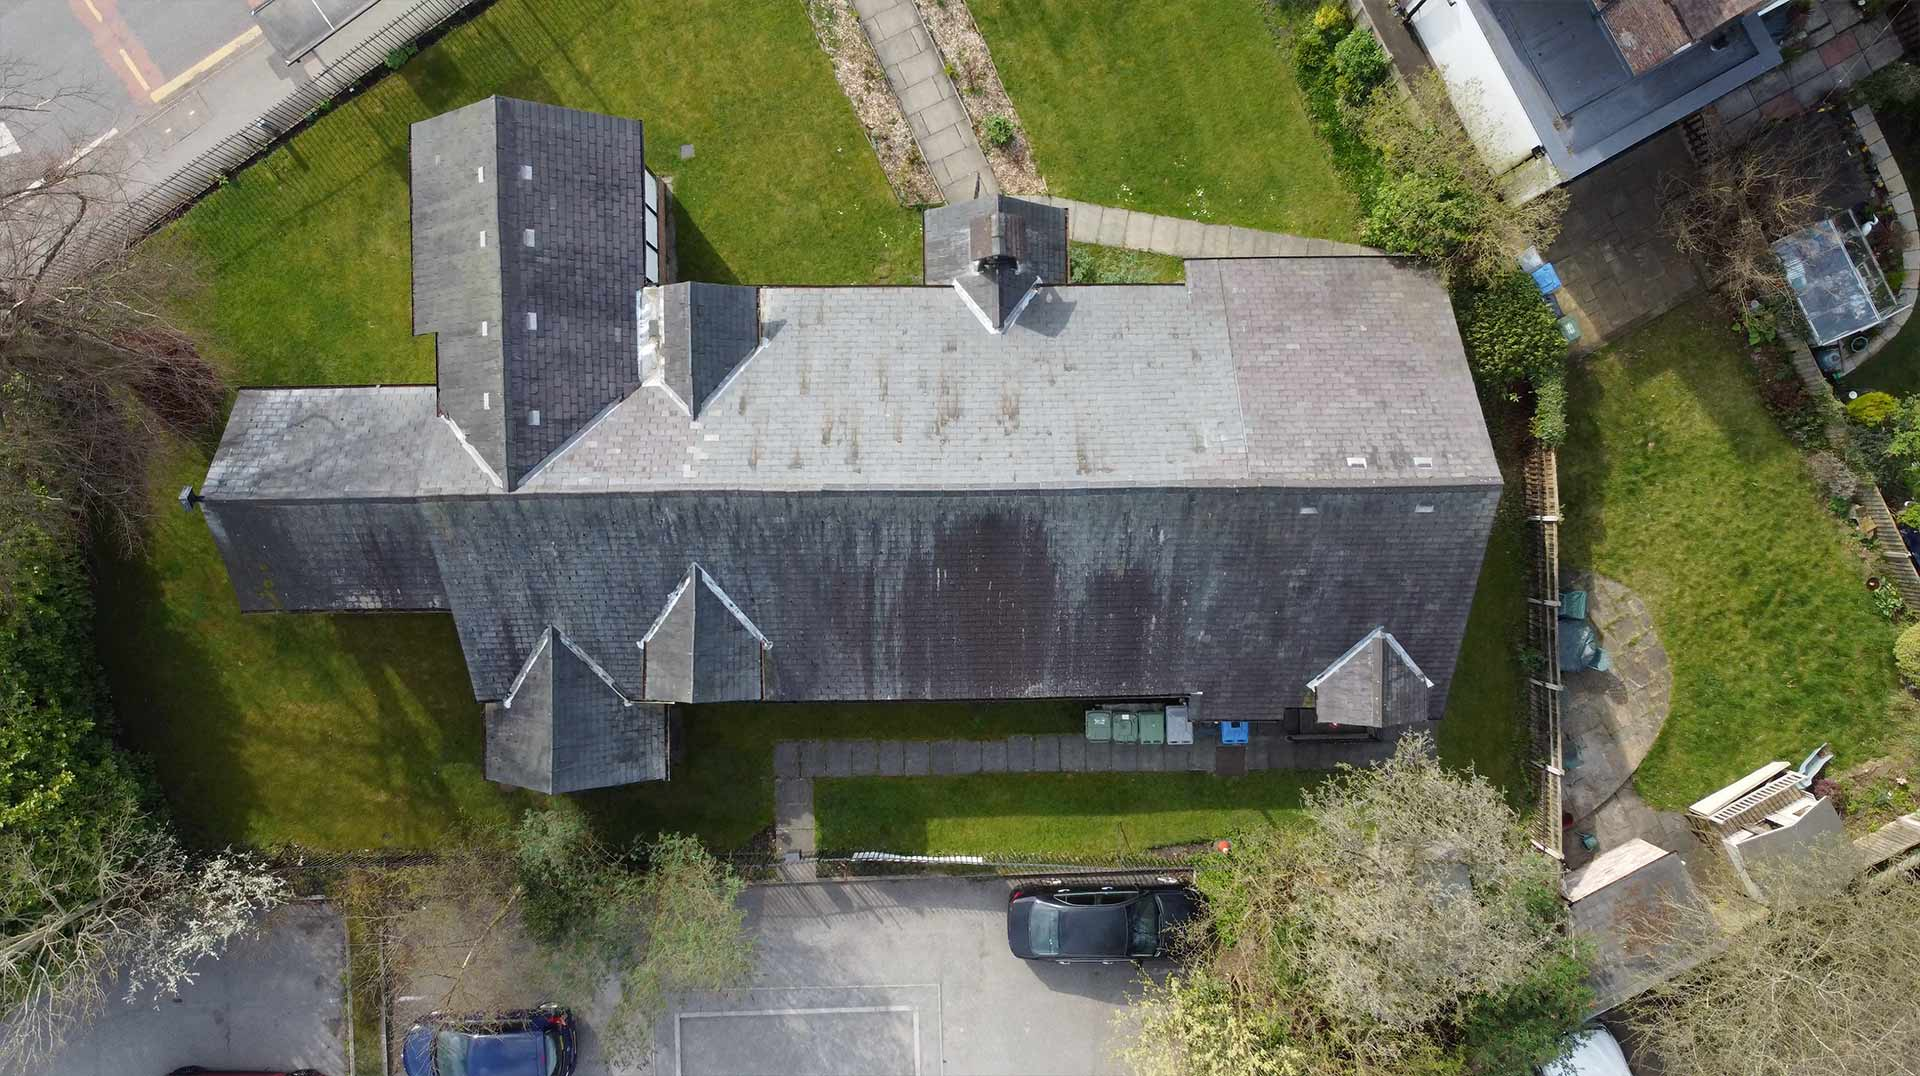 Drone Photograph of Church Roof